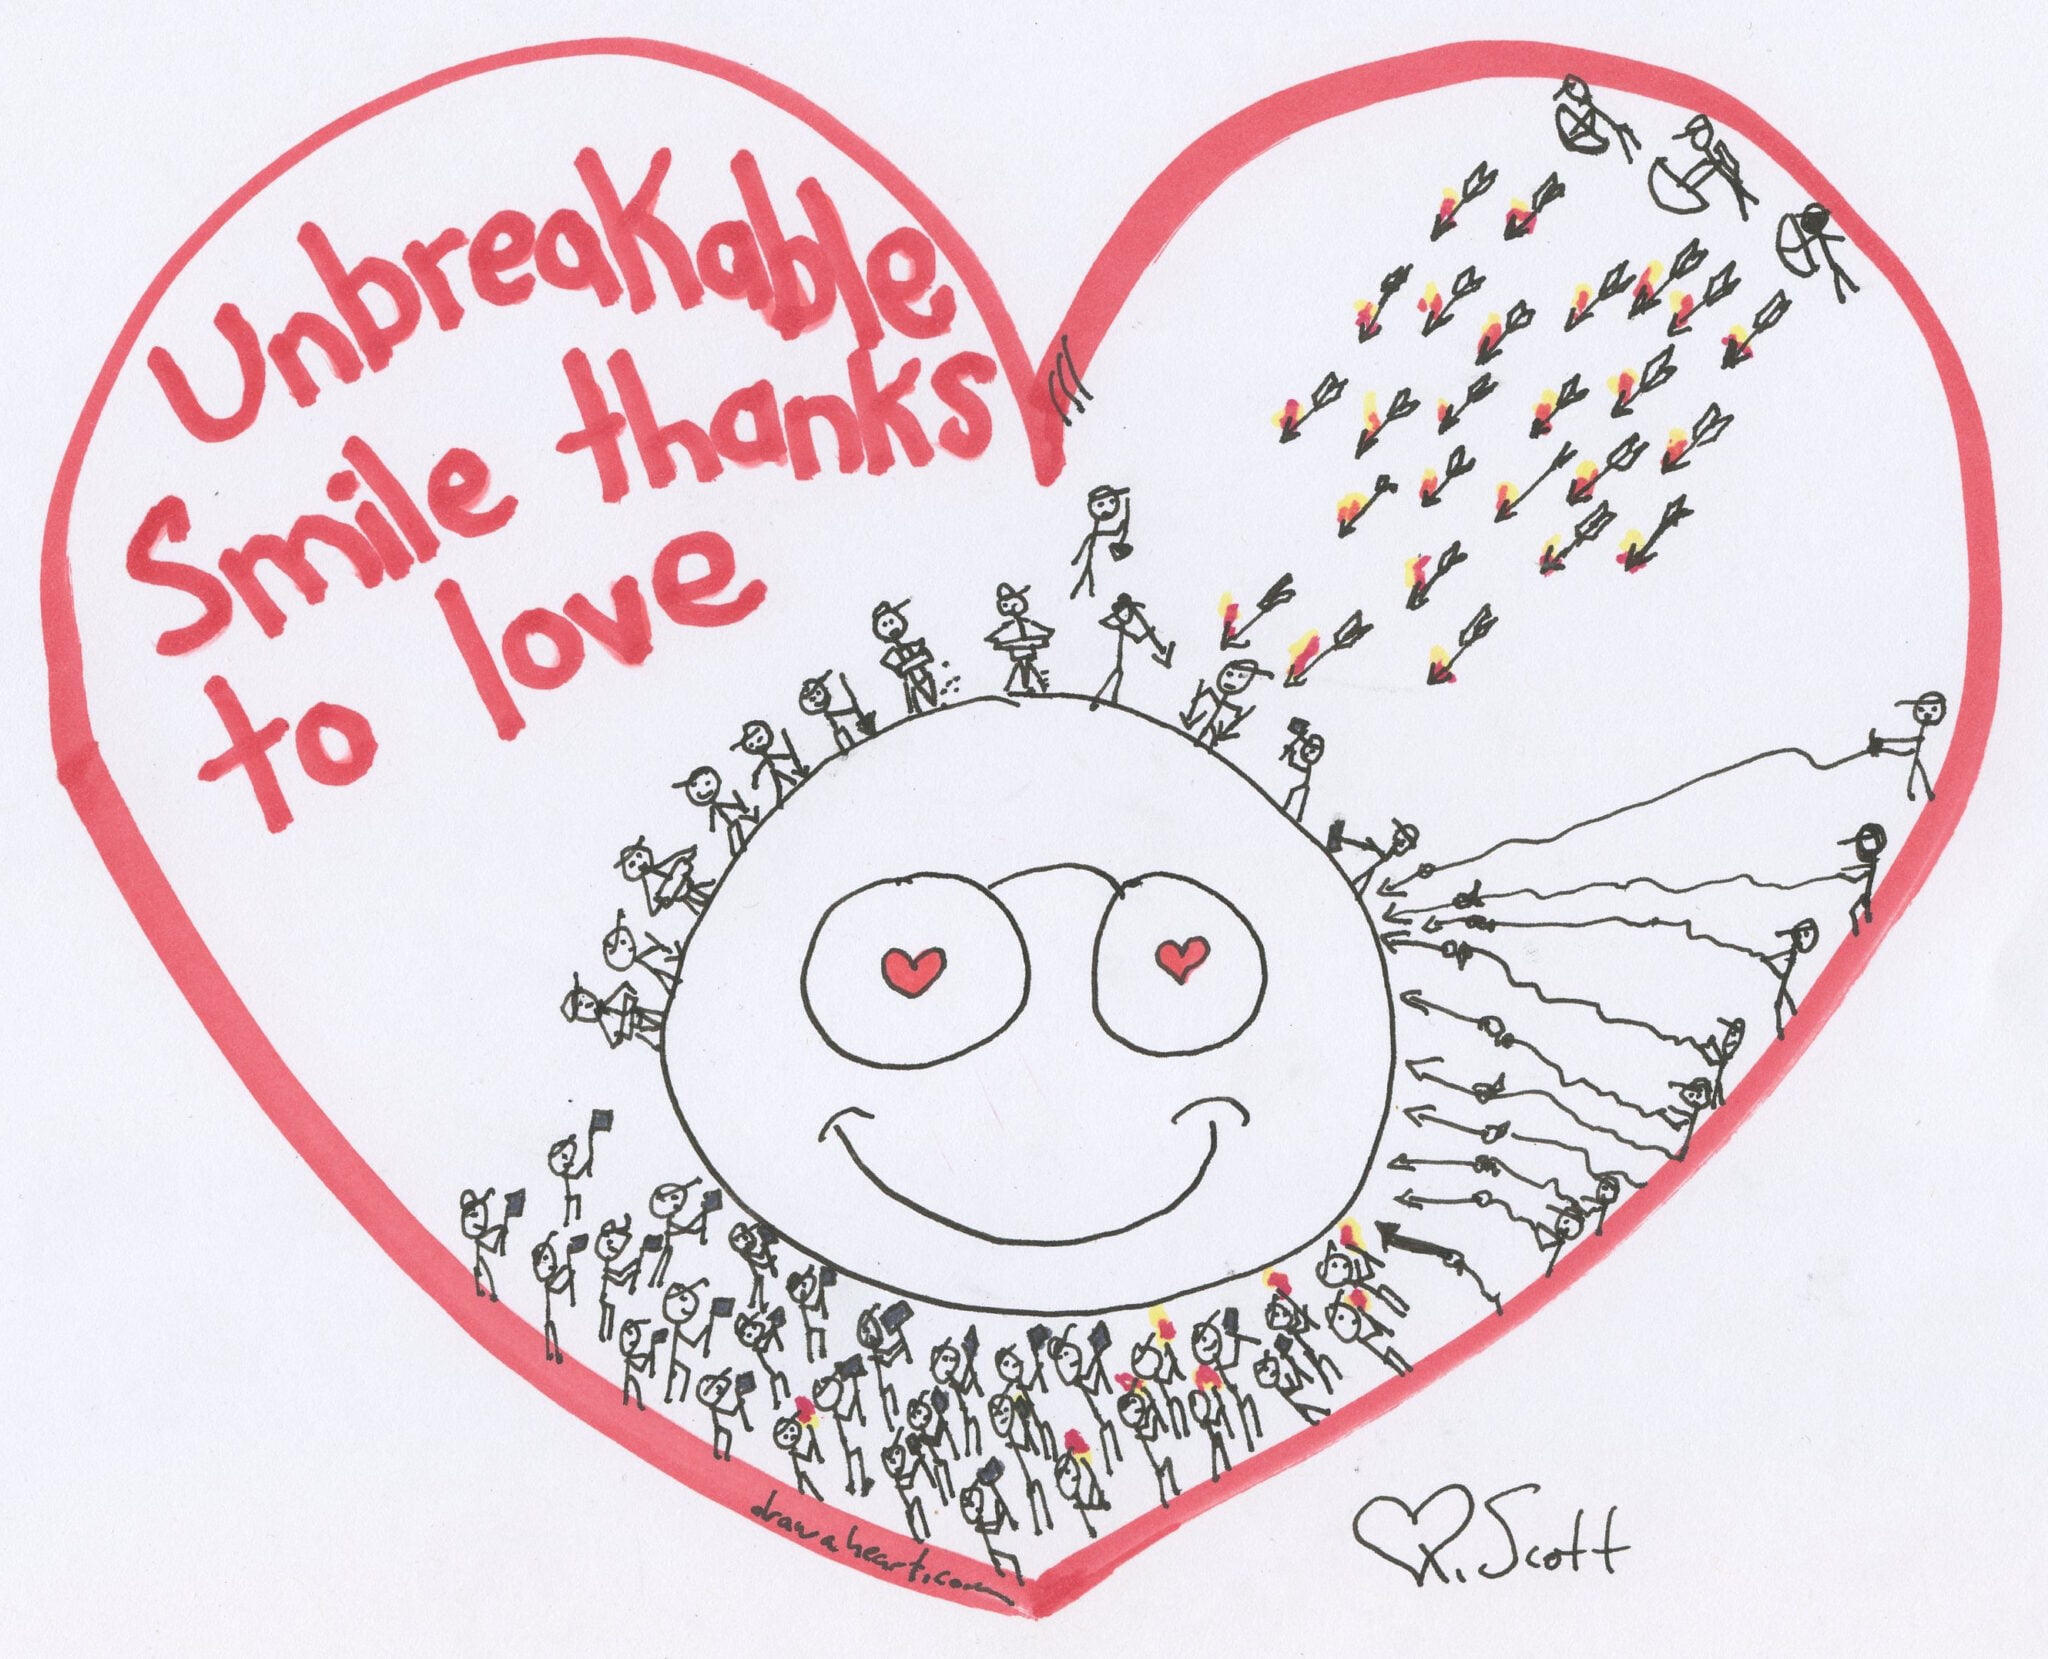 Unbreakable smile thanks to love.